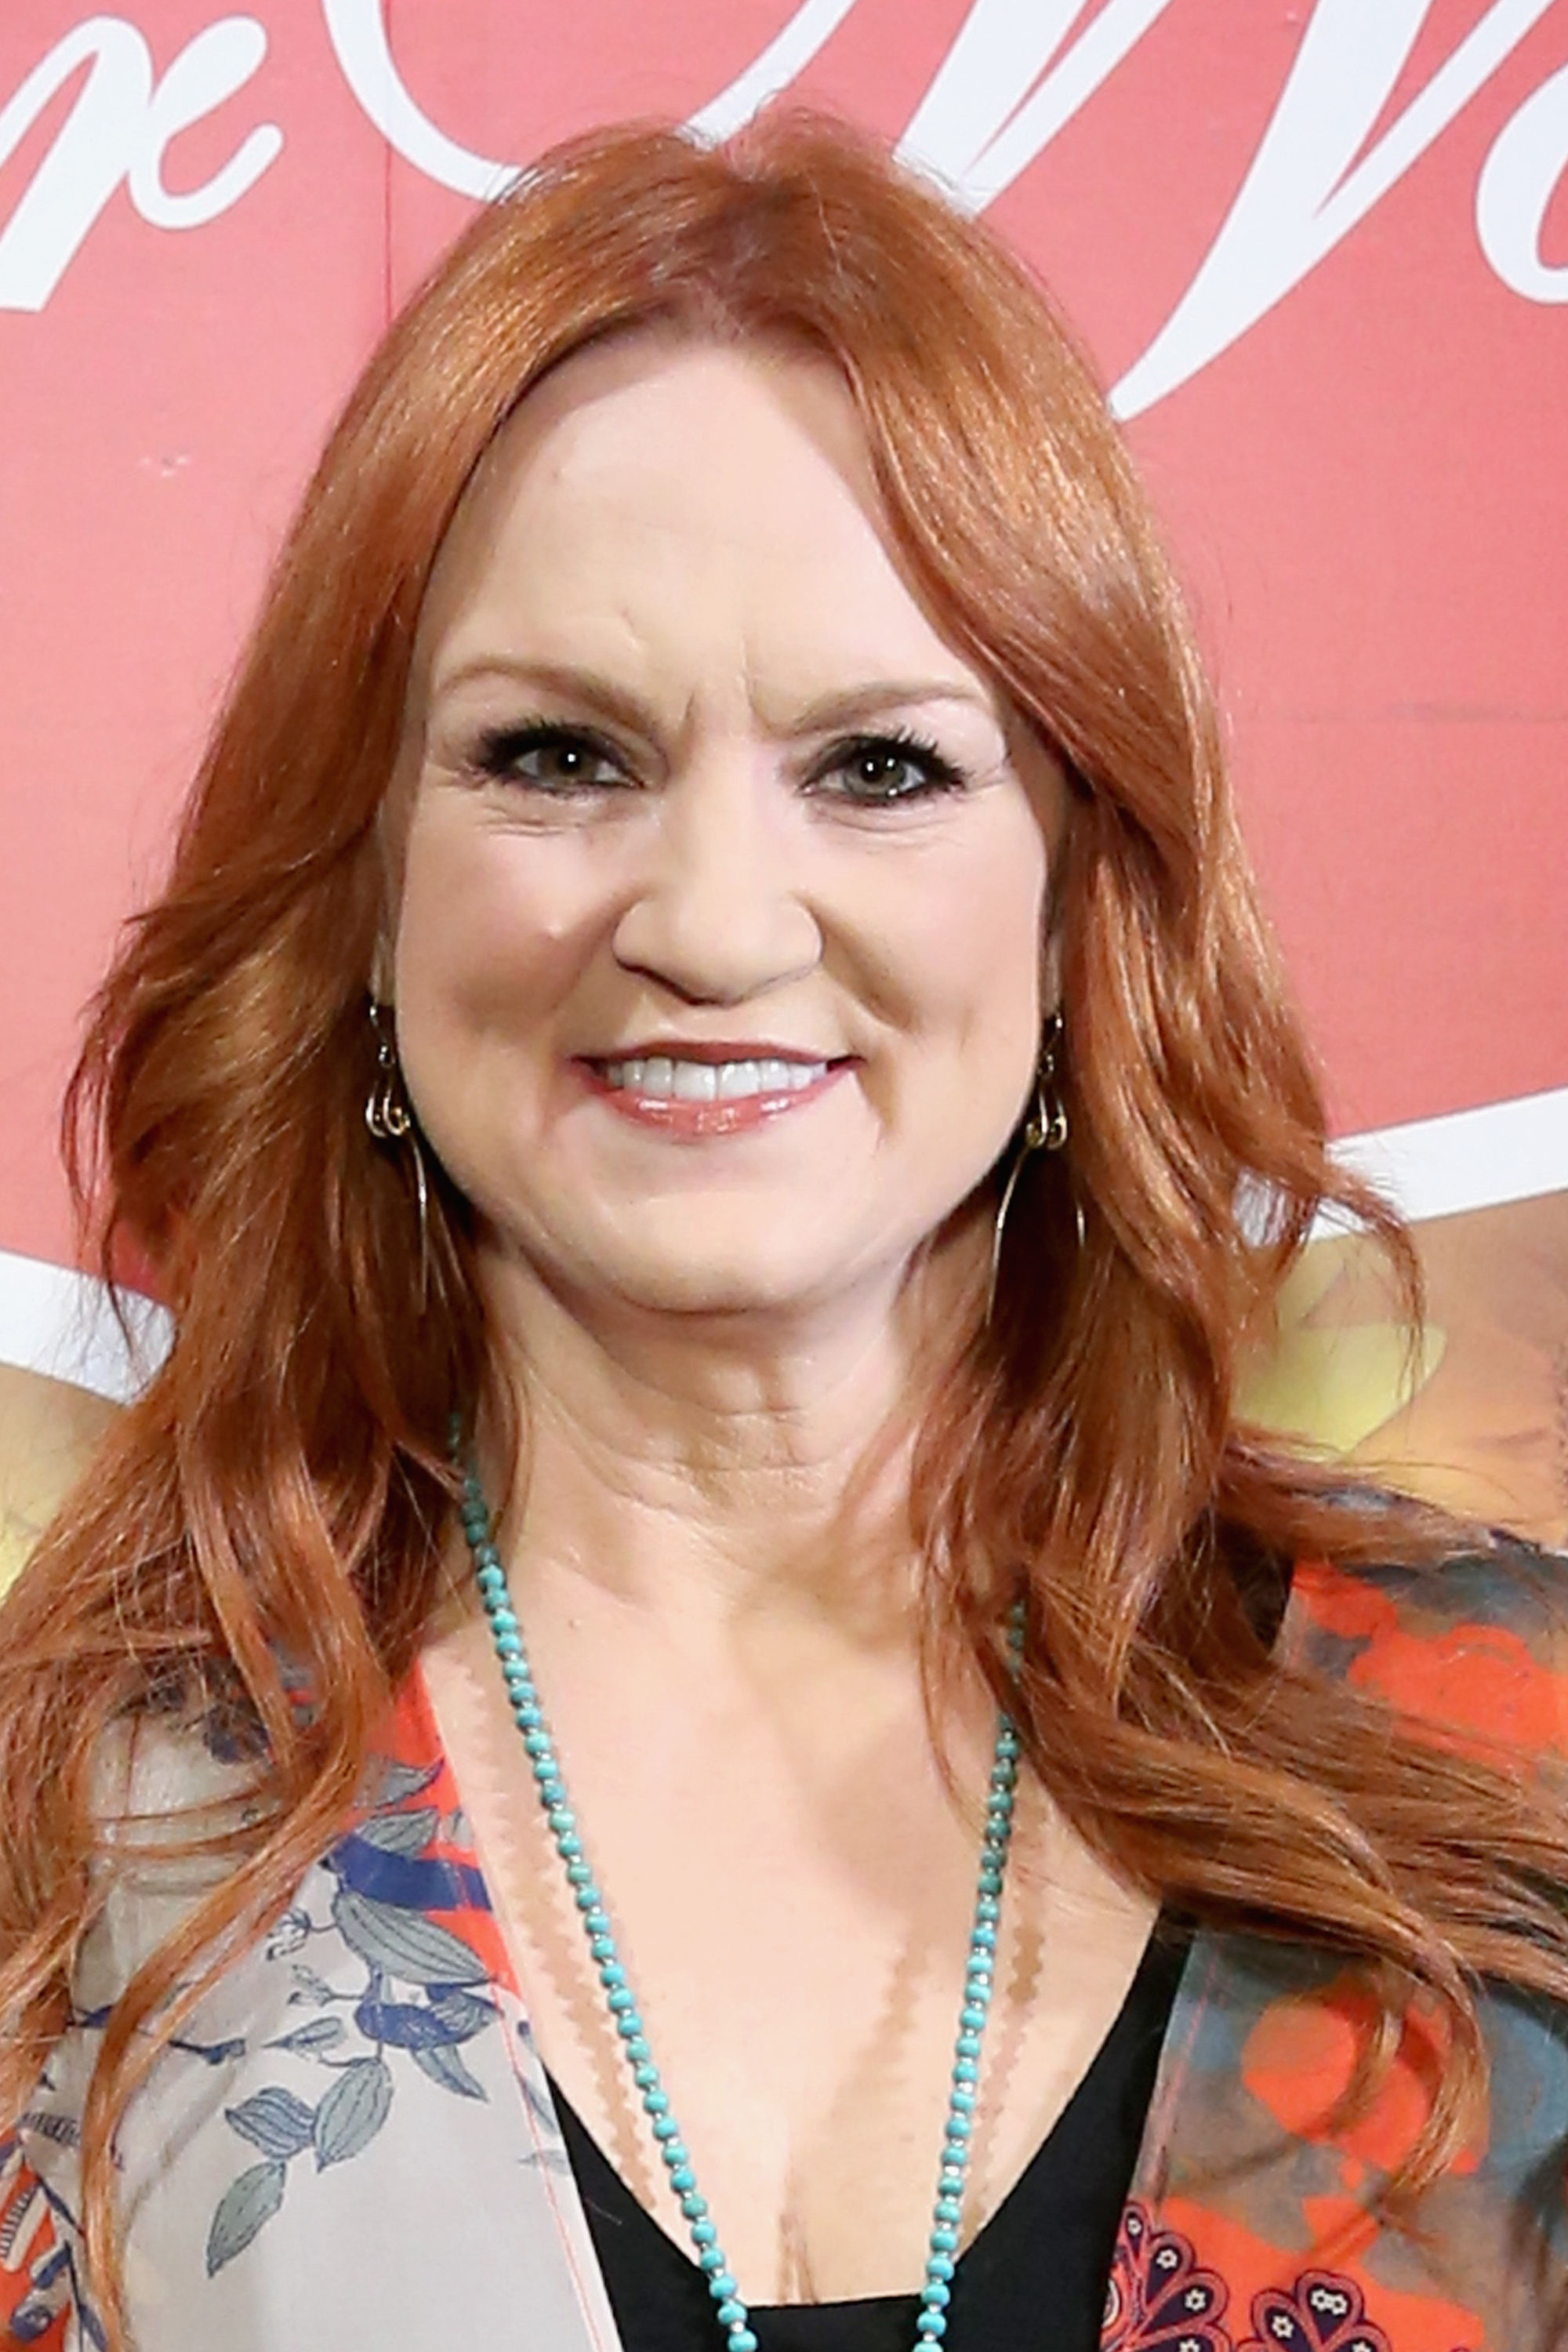 Yes, Ree Drummond Was Once a Vegetarian